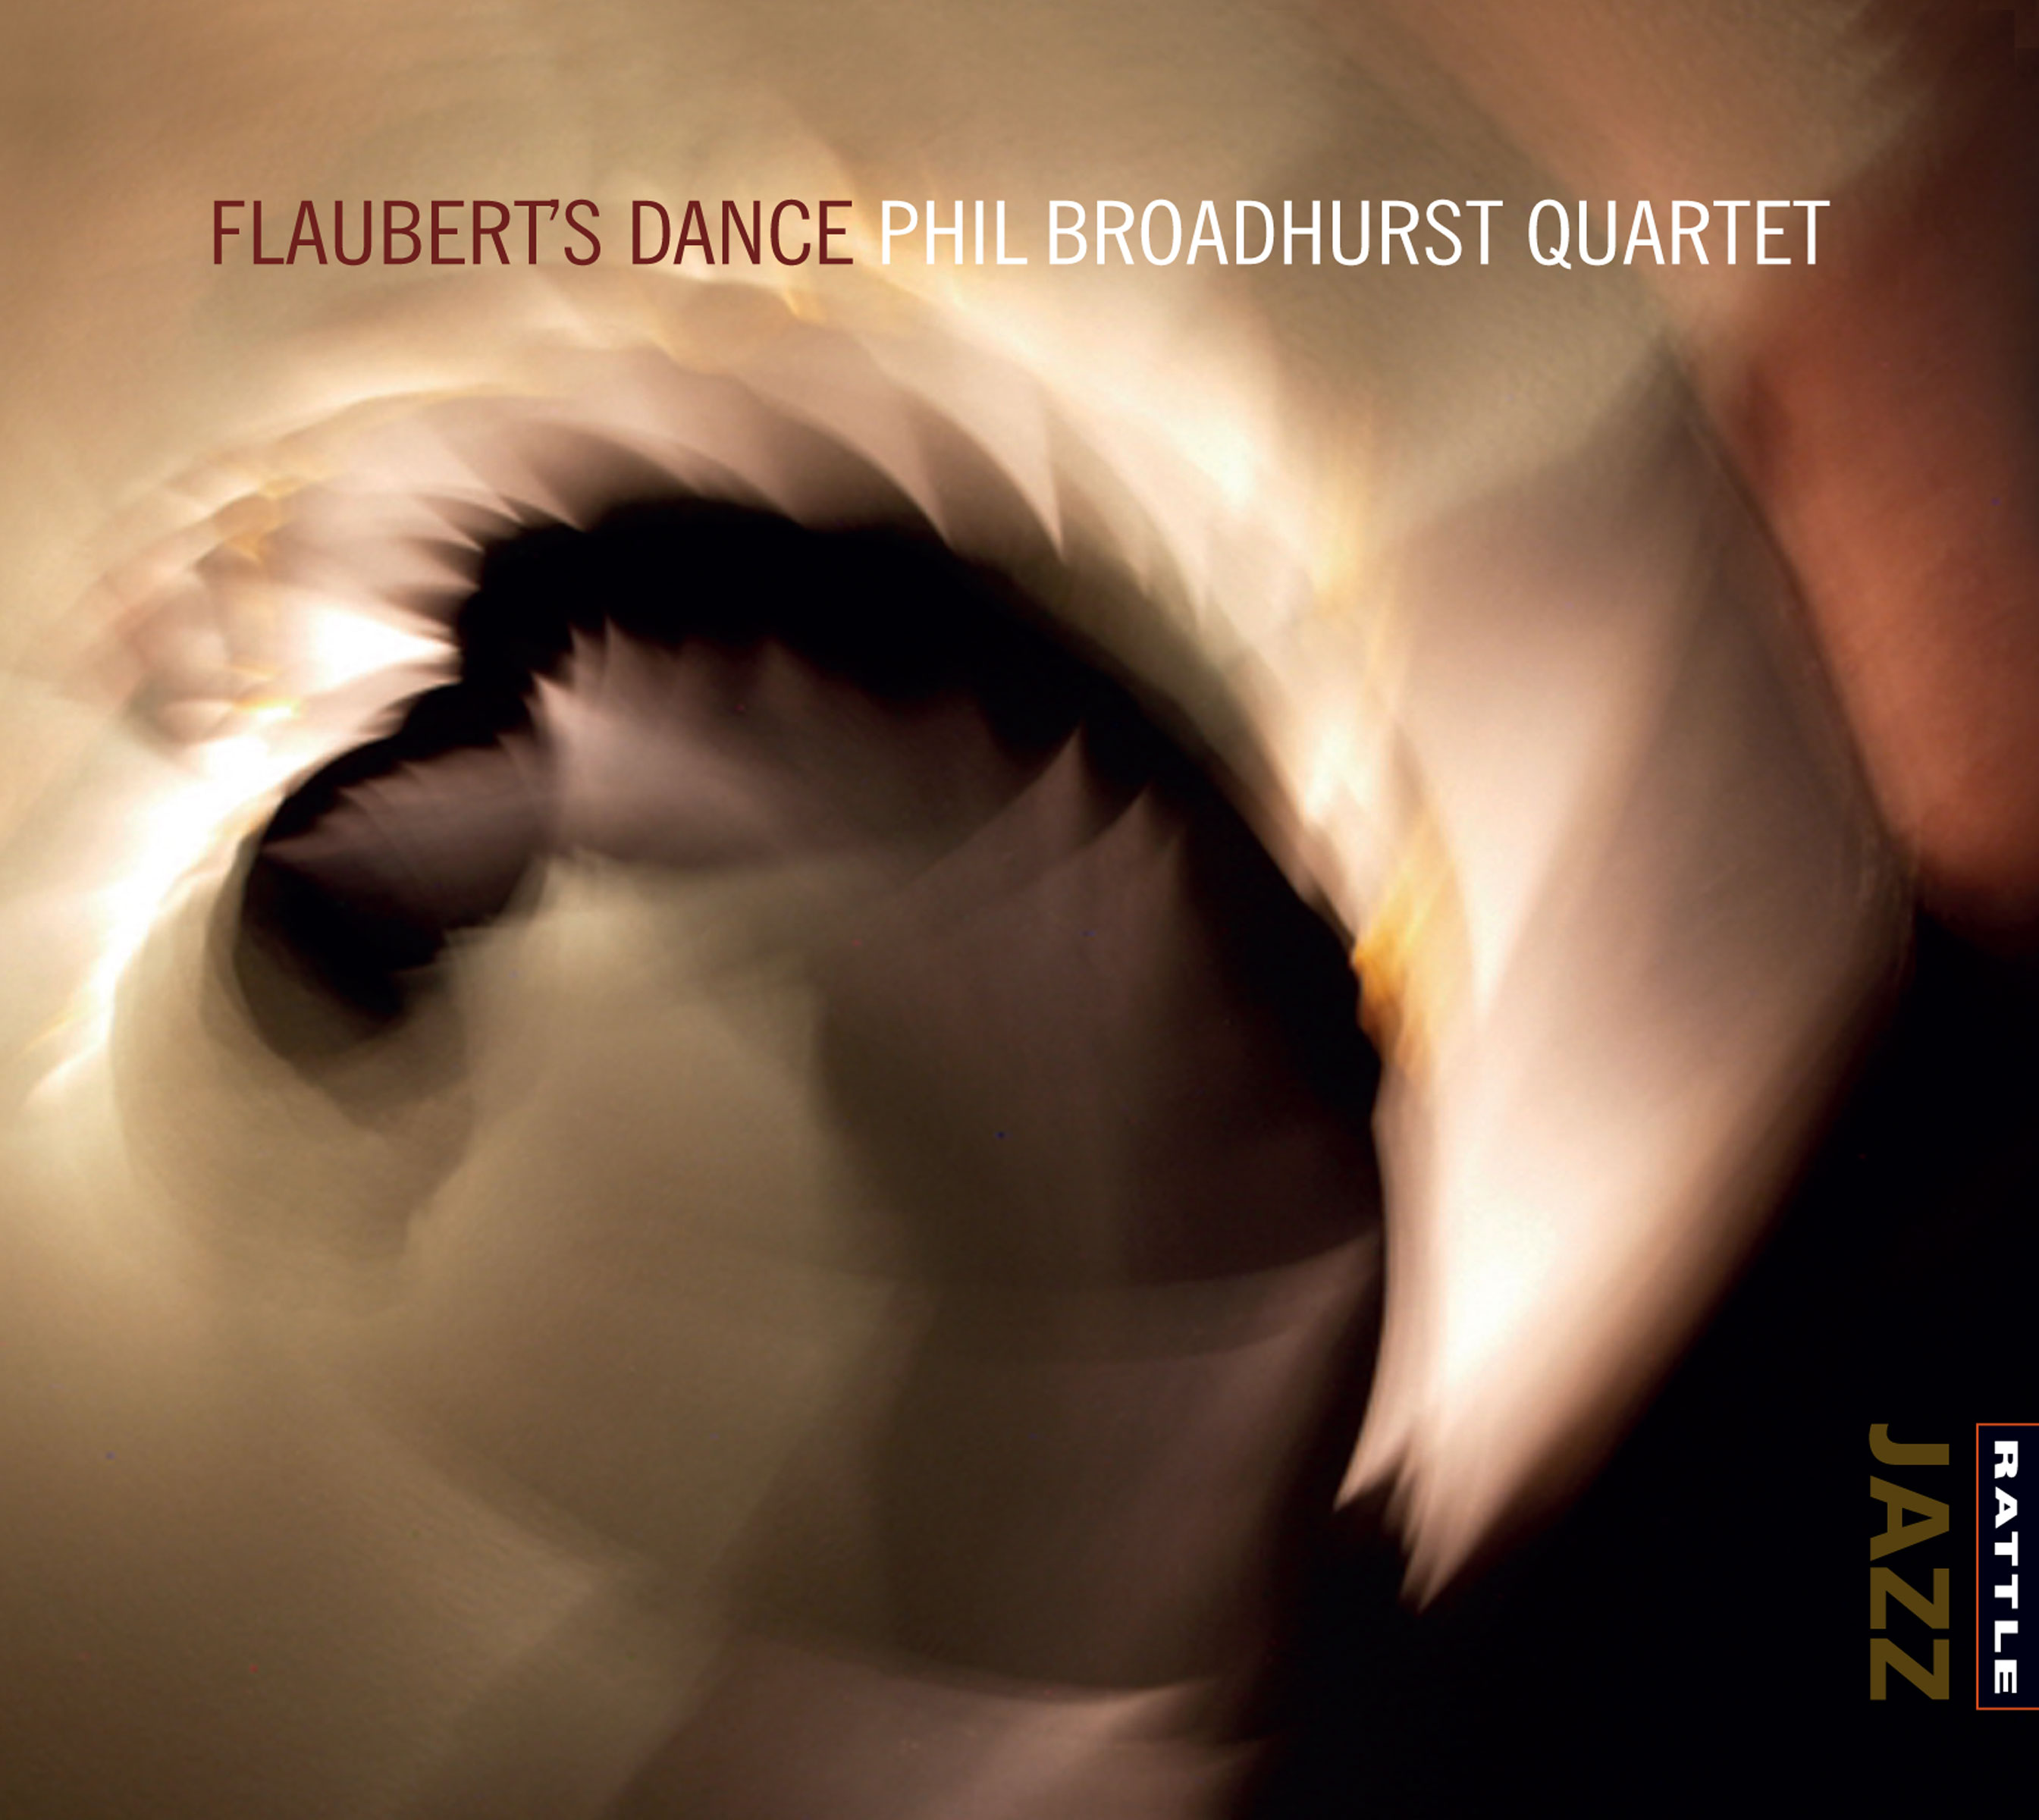 Phil Broadhurst Quartet | Flaubert's Dance - downloadable MP3 ALBUM